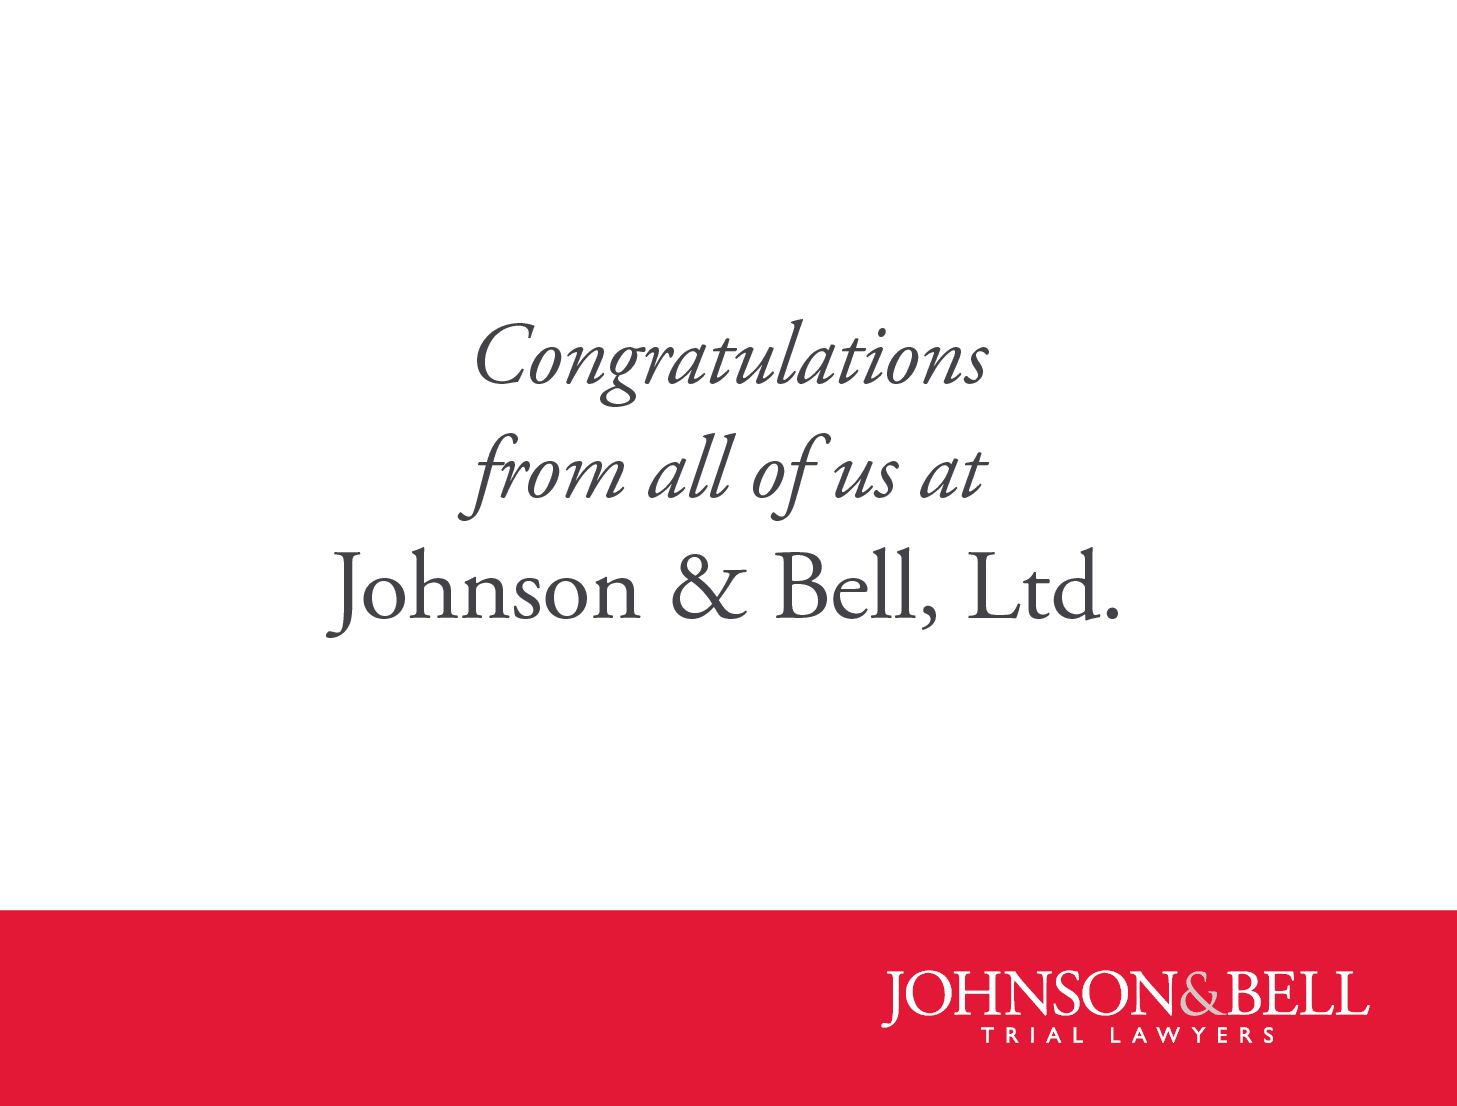 Congratulations Carlos Vera from all of us at Johnson and Bell